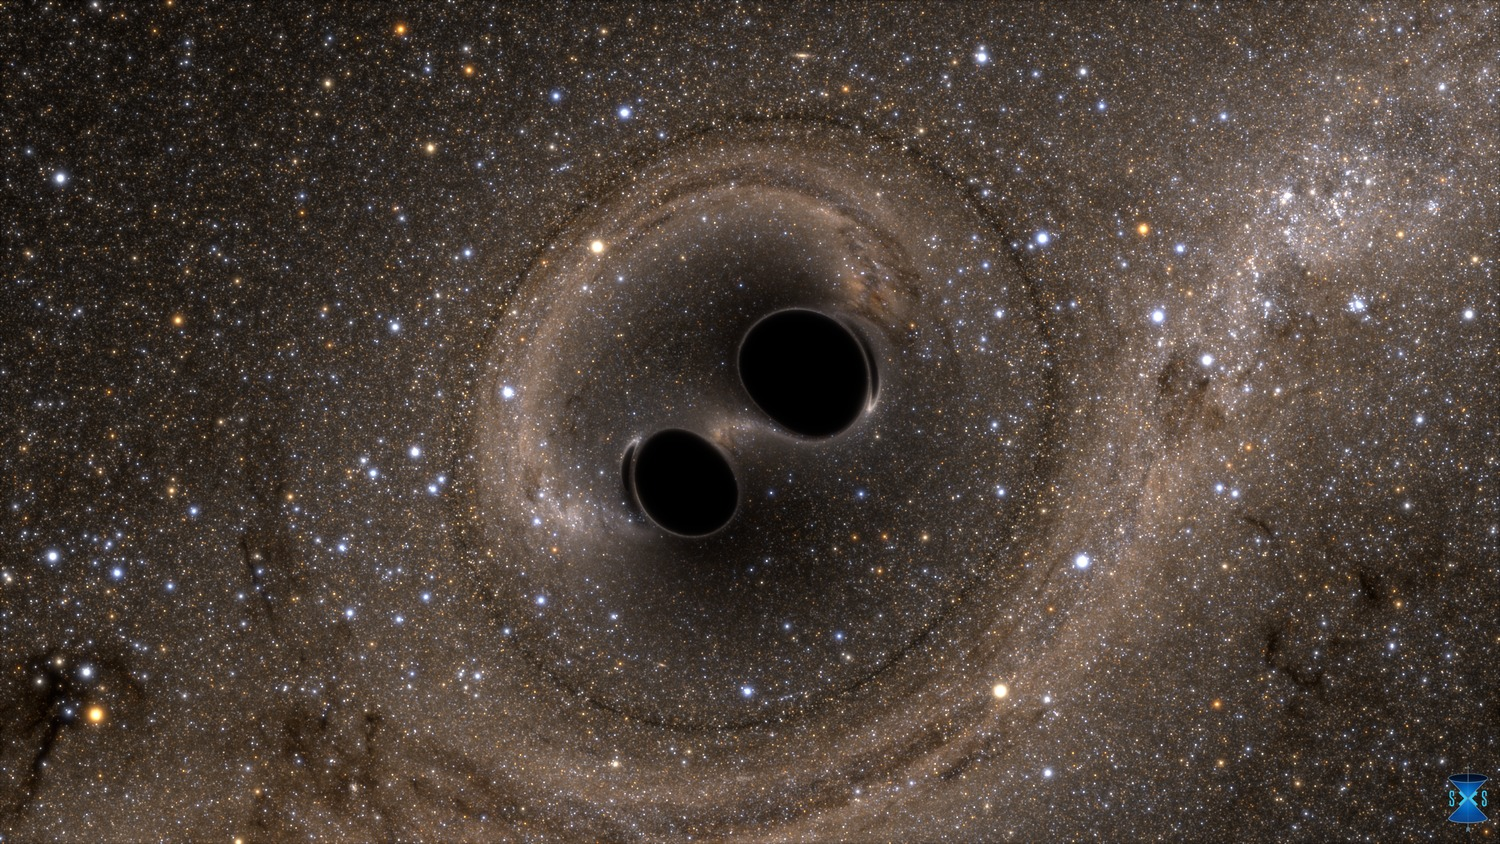 When black holes collide, gravitational waves are created in space itself (image is a computer simulation). - Image Credit: The SXS (Simulating eXtreme Spacetimes) Project